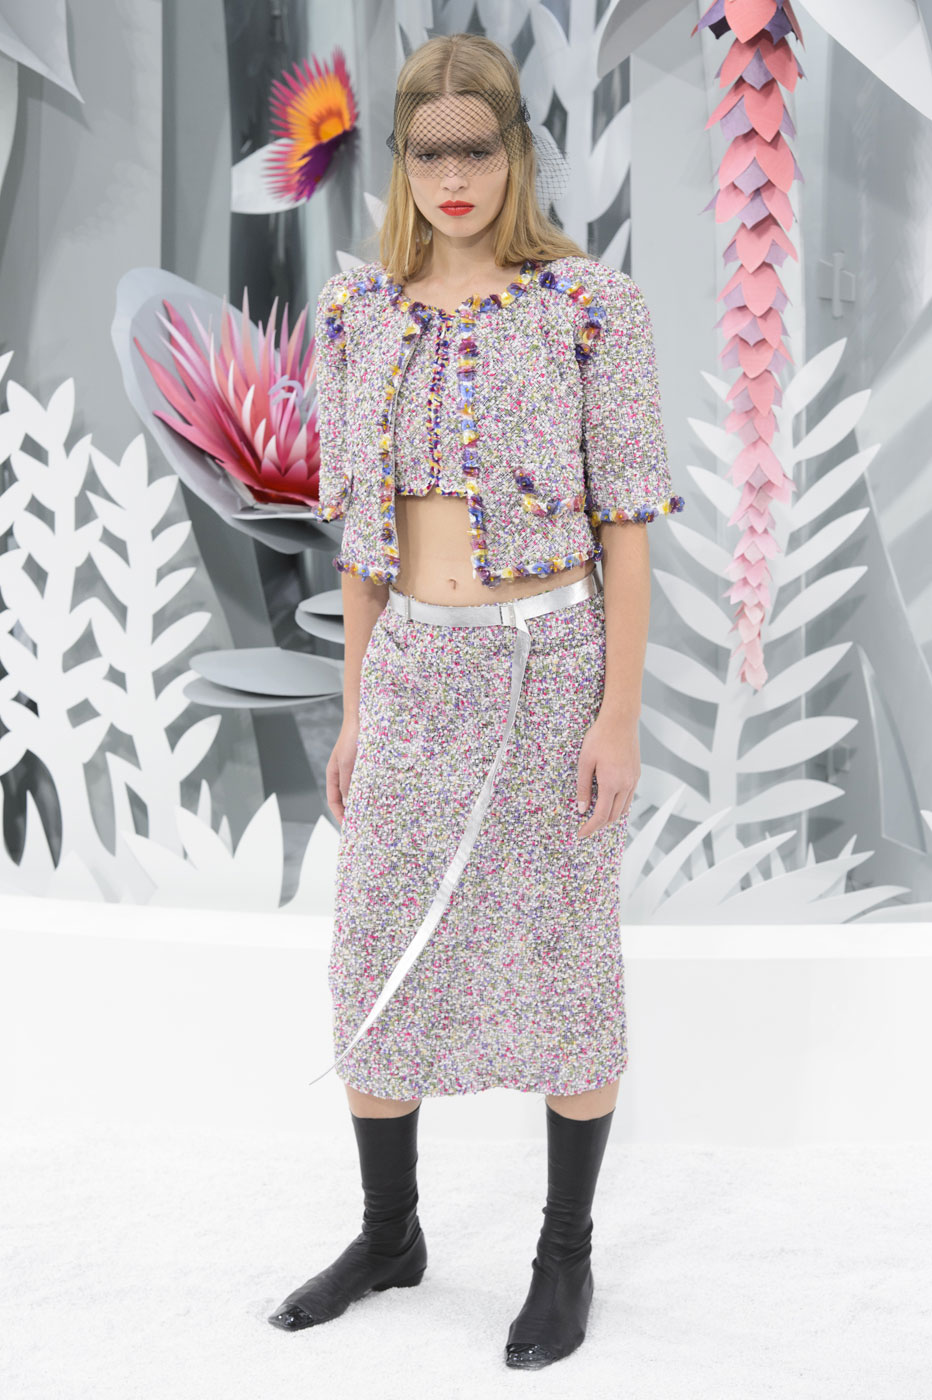 Chanel-fashion-runway-show-haute-couture-paris-spring-summer-2015-the-impression-040